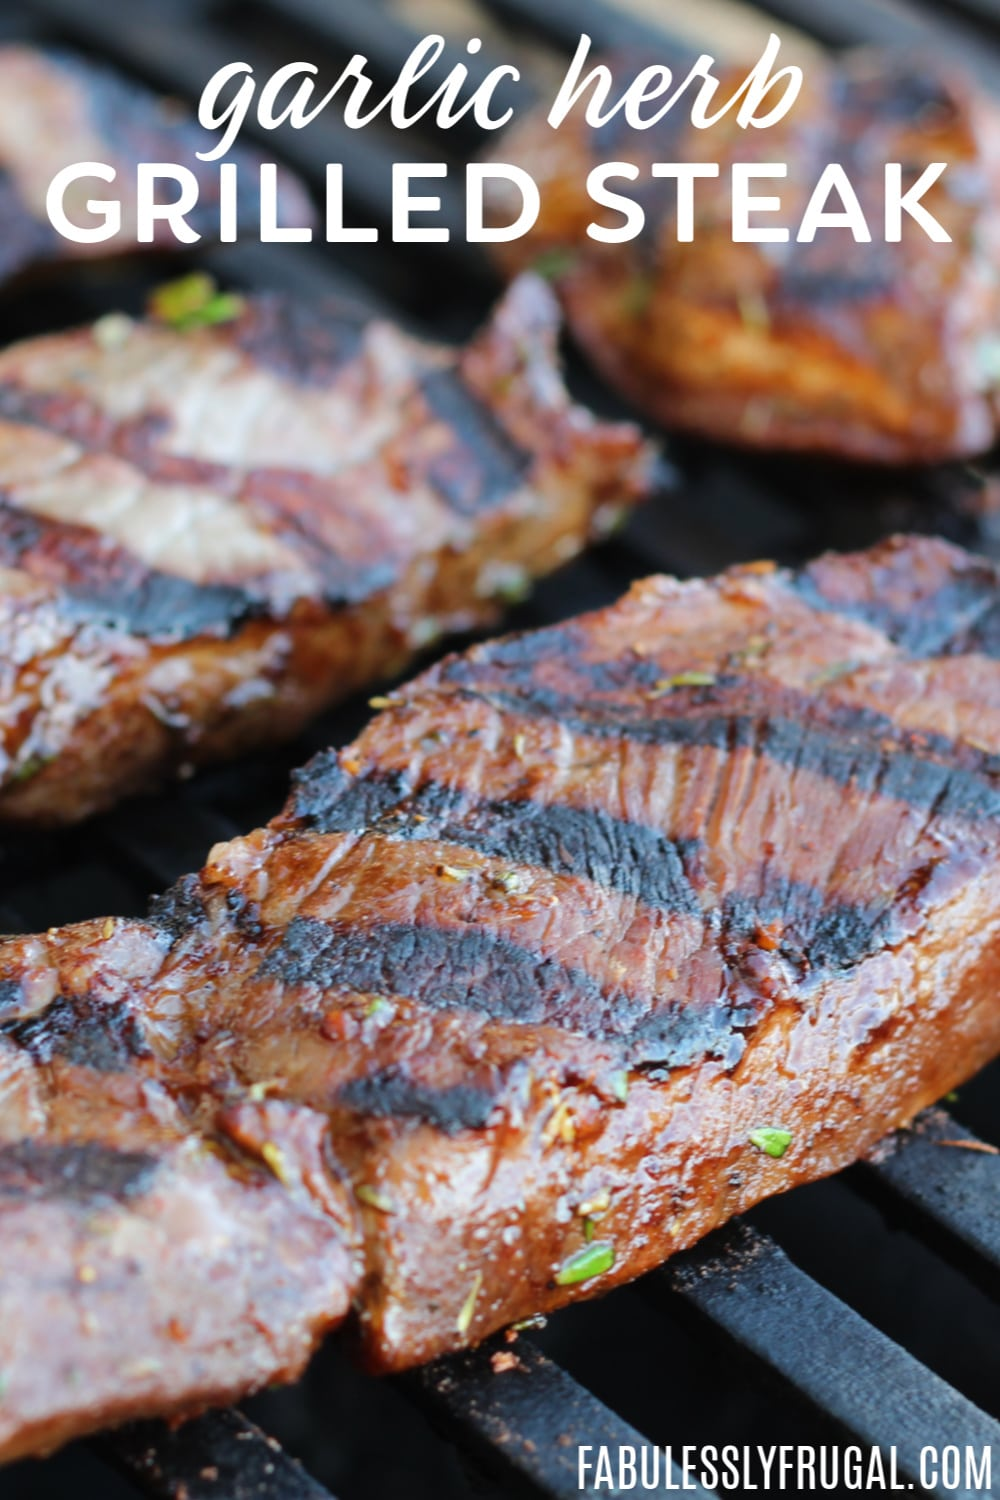 Garlic herb grilled steak tips recipe